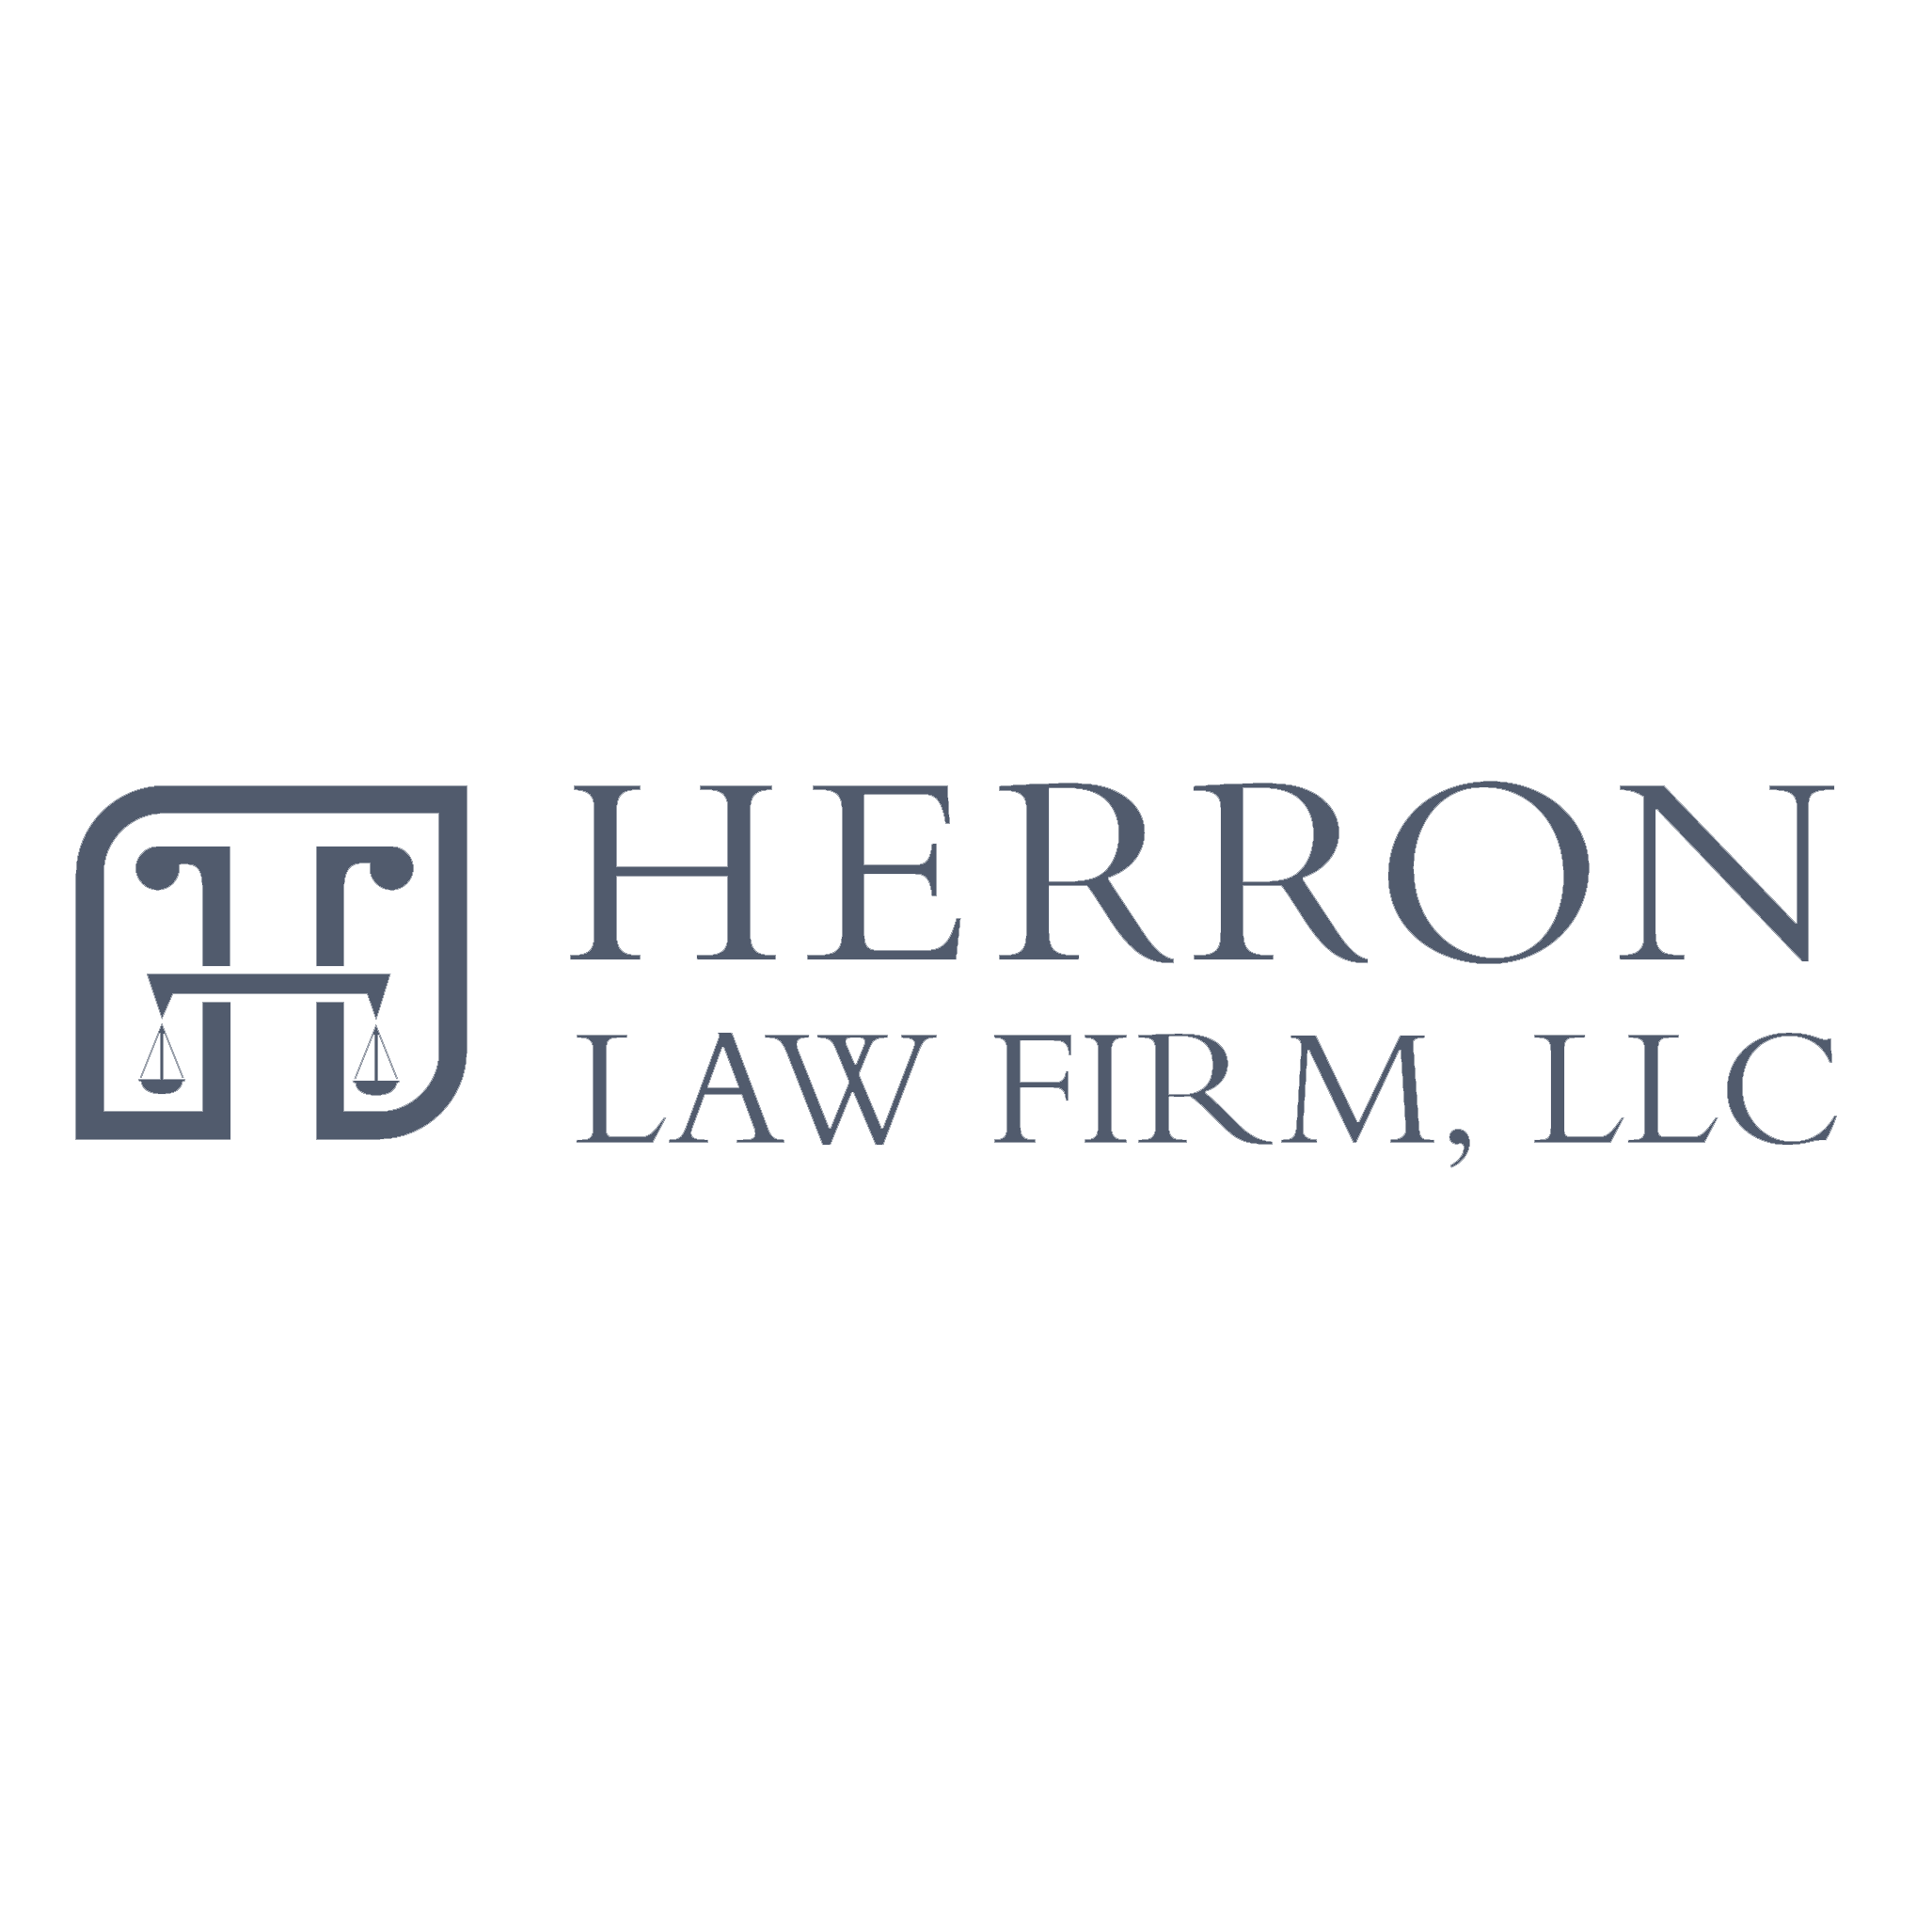 Herron Law Firm, LLC